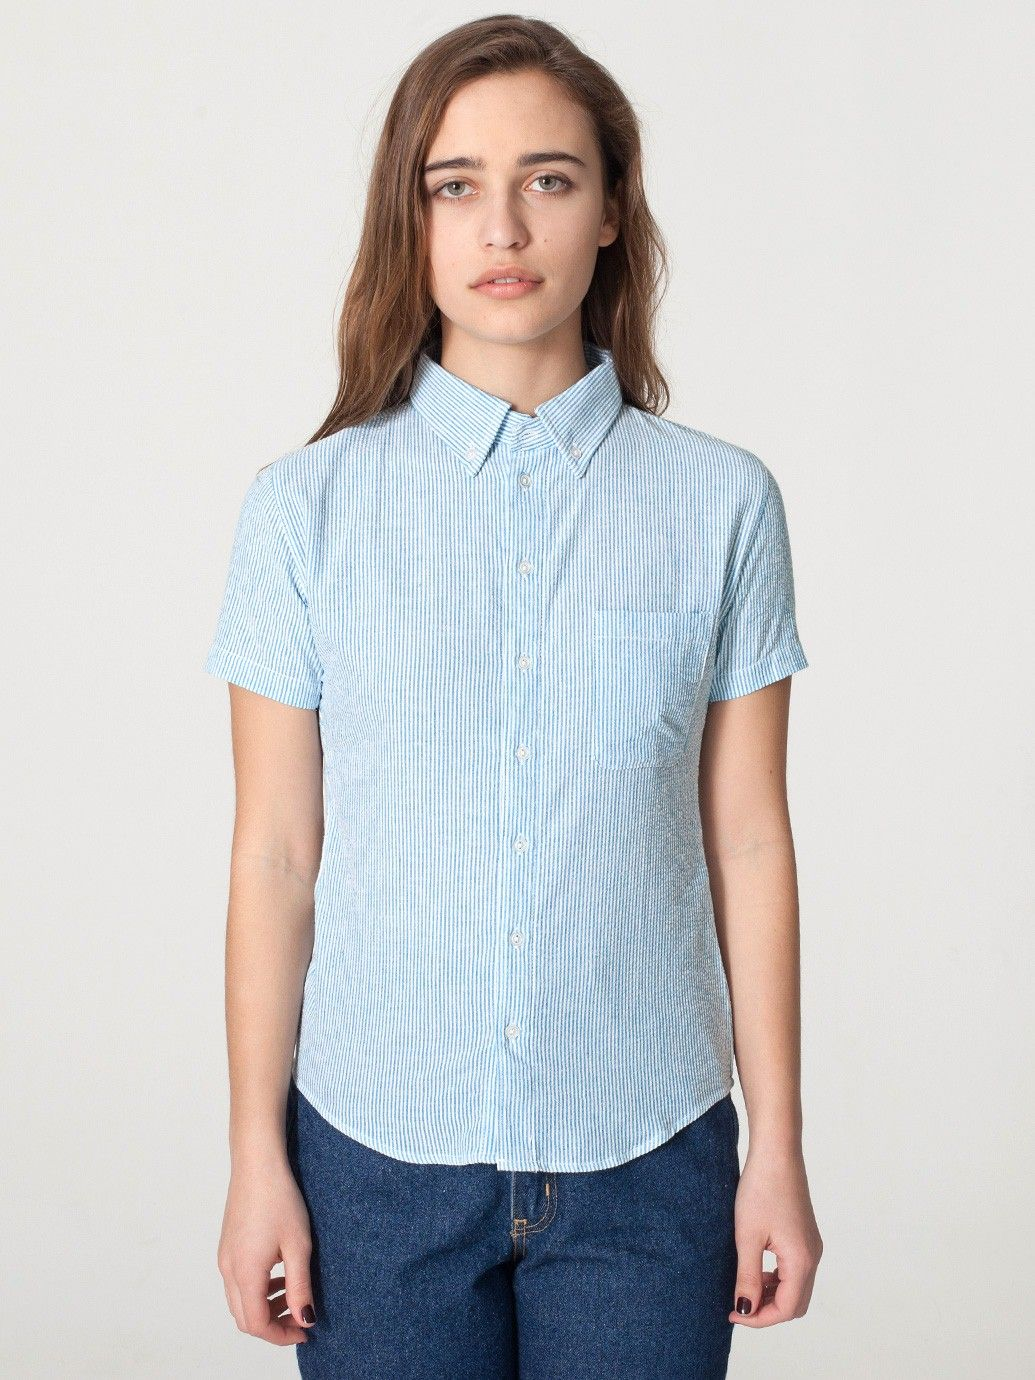 Unisex Seersucker Short Sleeve Button-Down Shirt ...